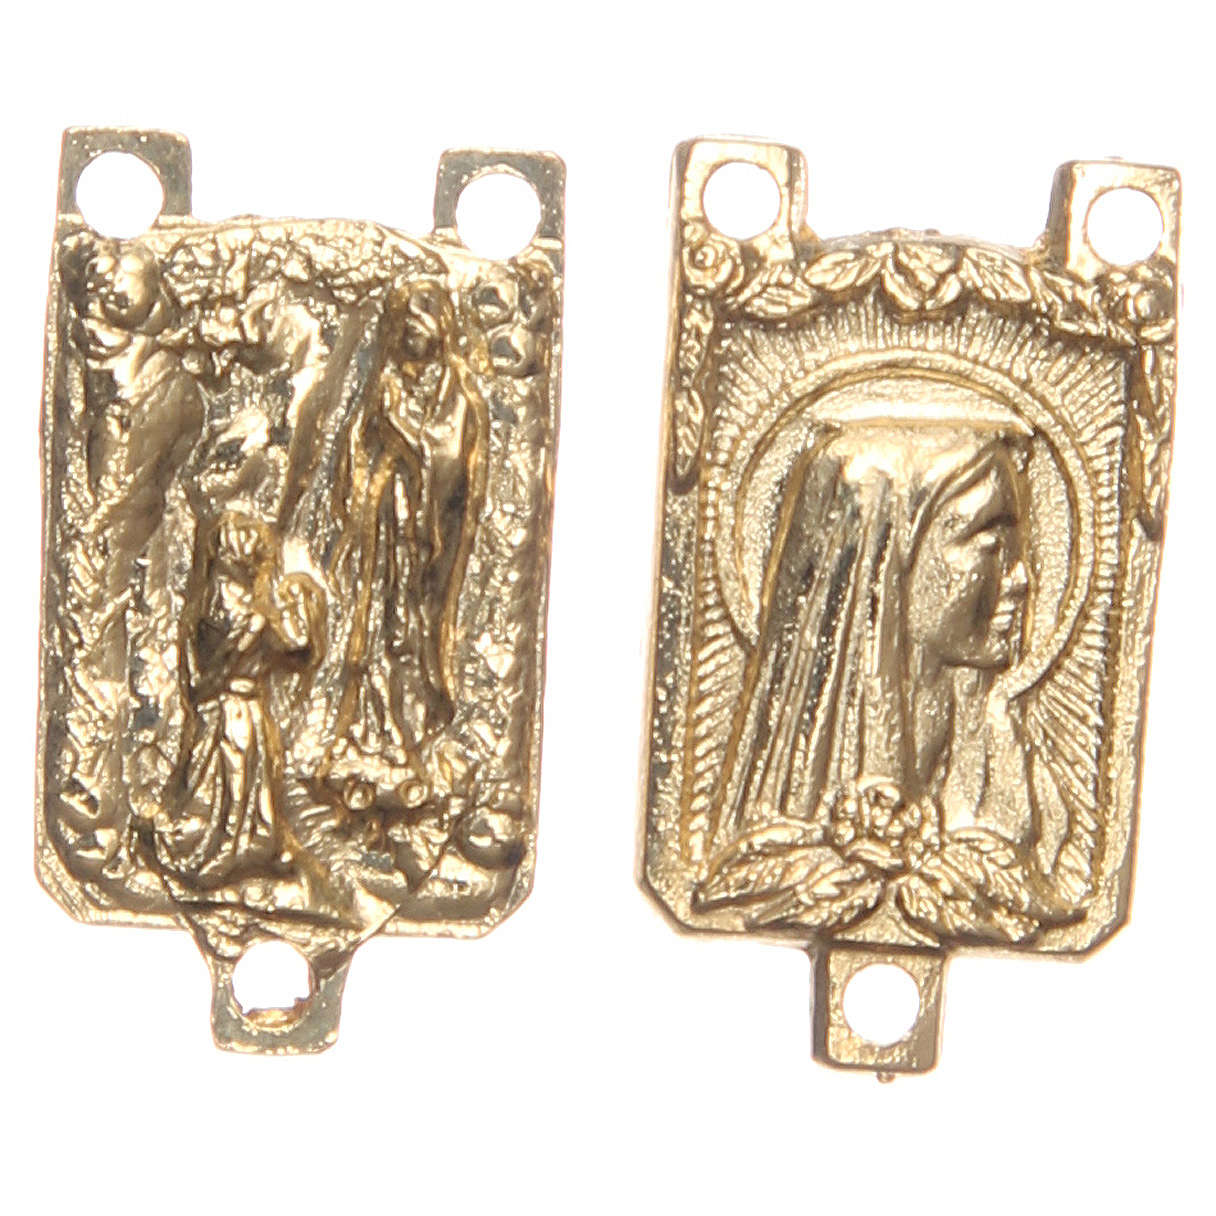 STOCK rectangular medal in golden metal with Grotto of Lourdes 4